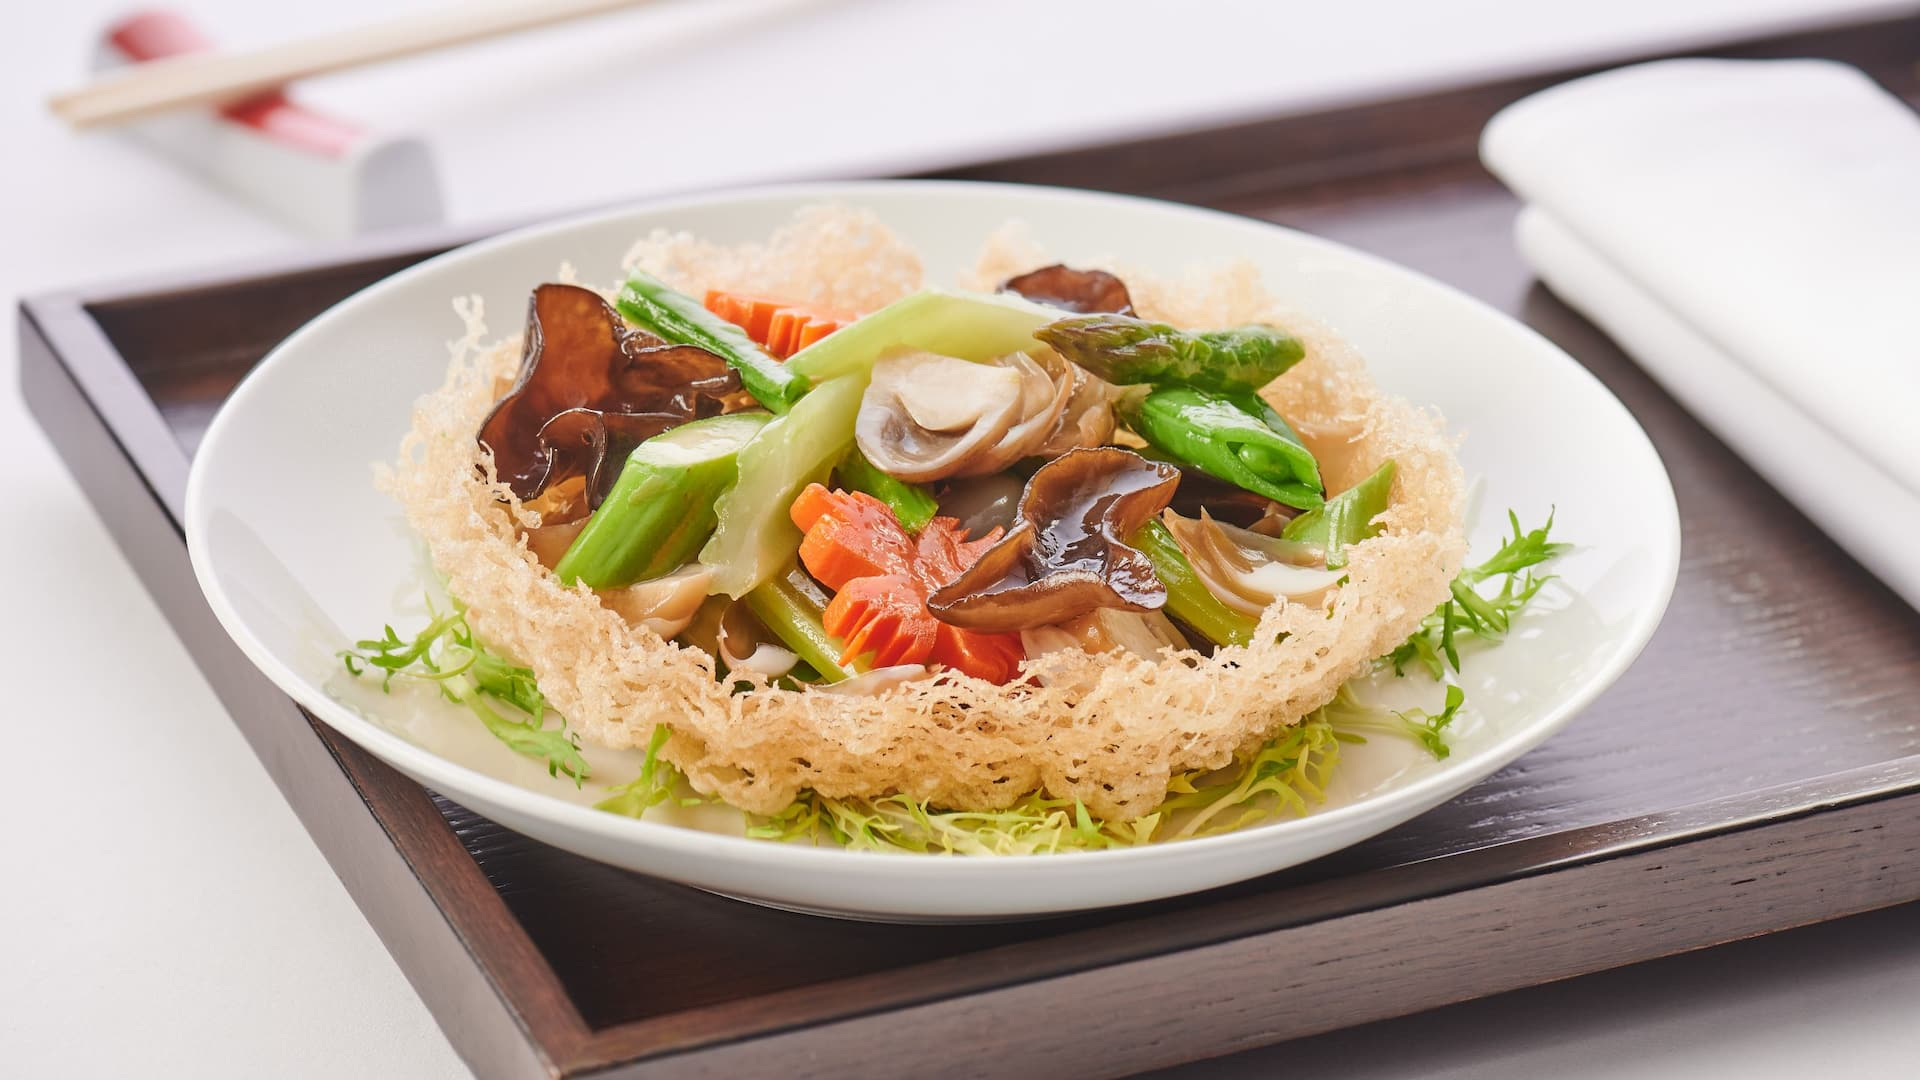 Stir-fried vegetables on basket